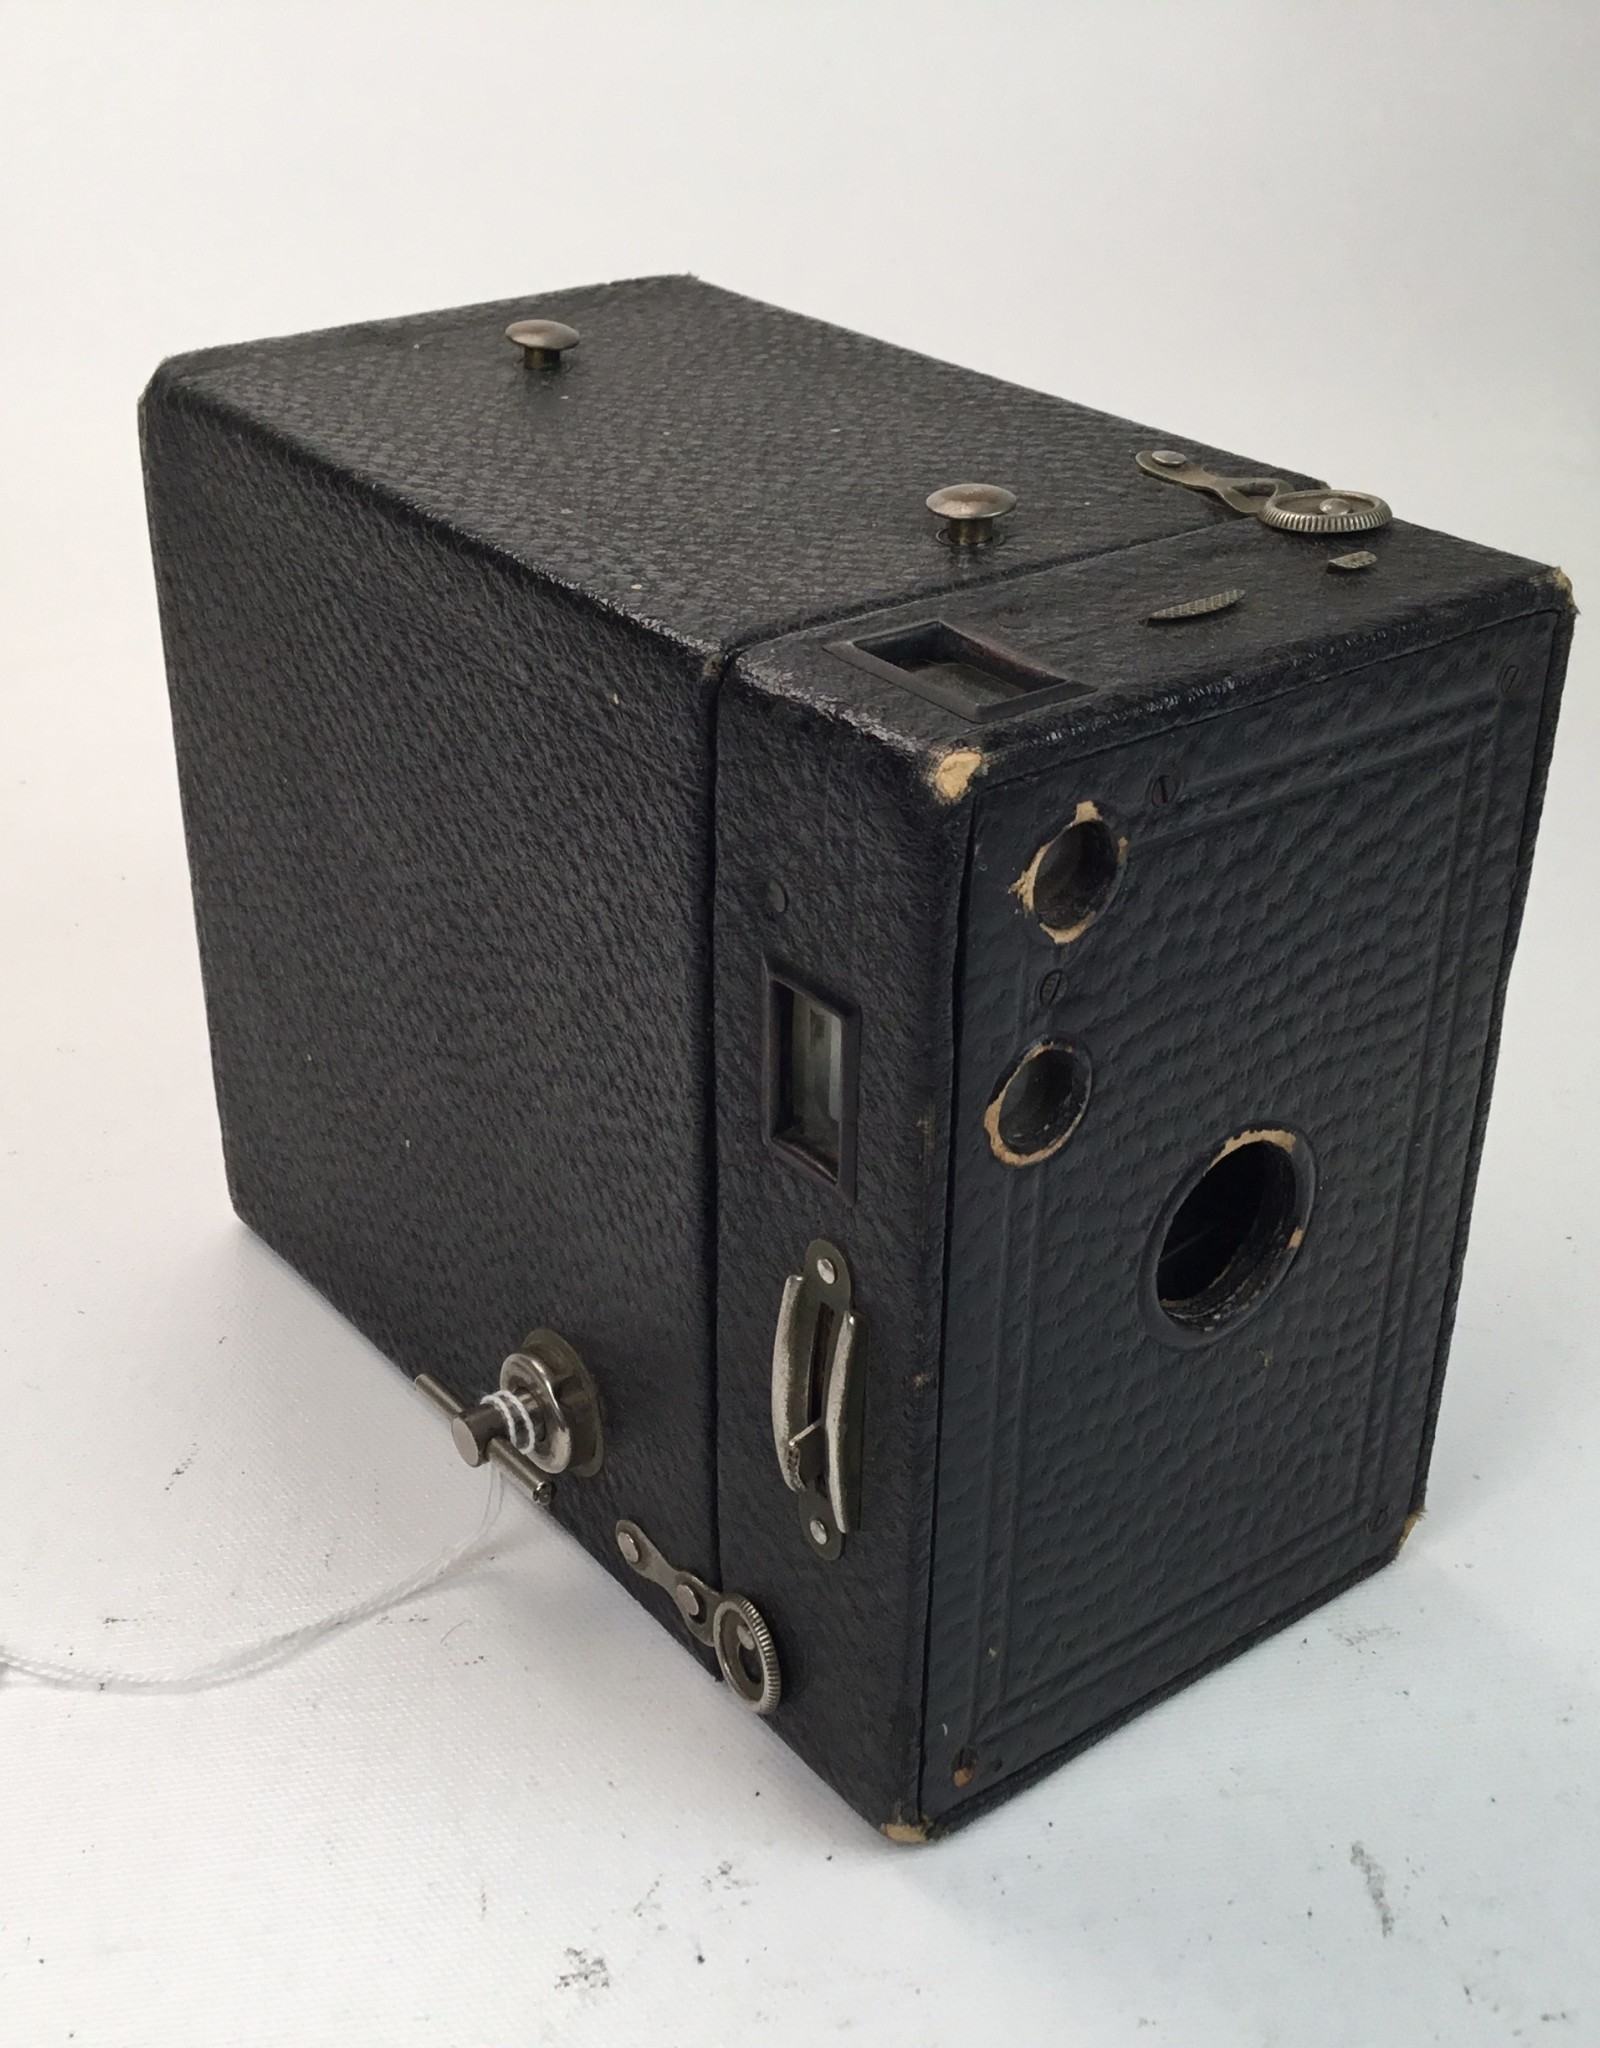 Kodak Brownie No. 2 Camera Used Non Functioning